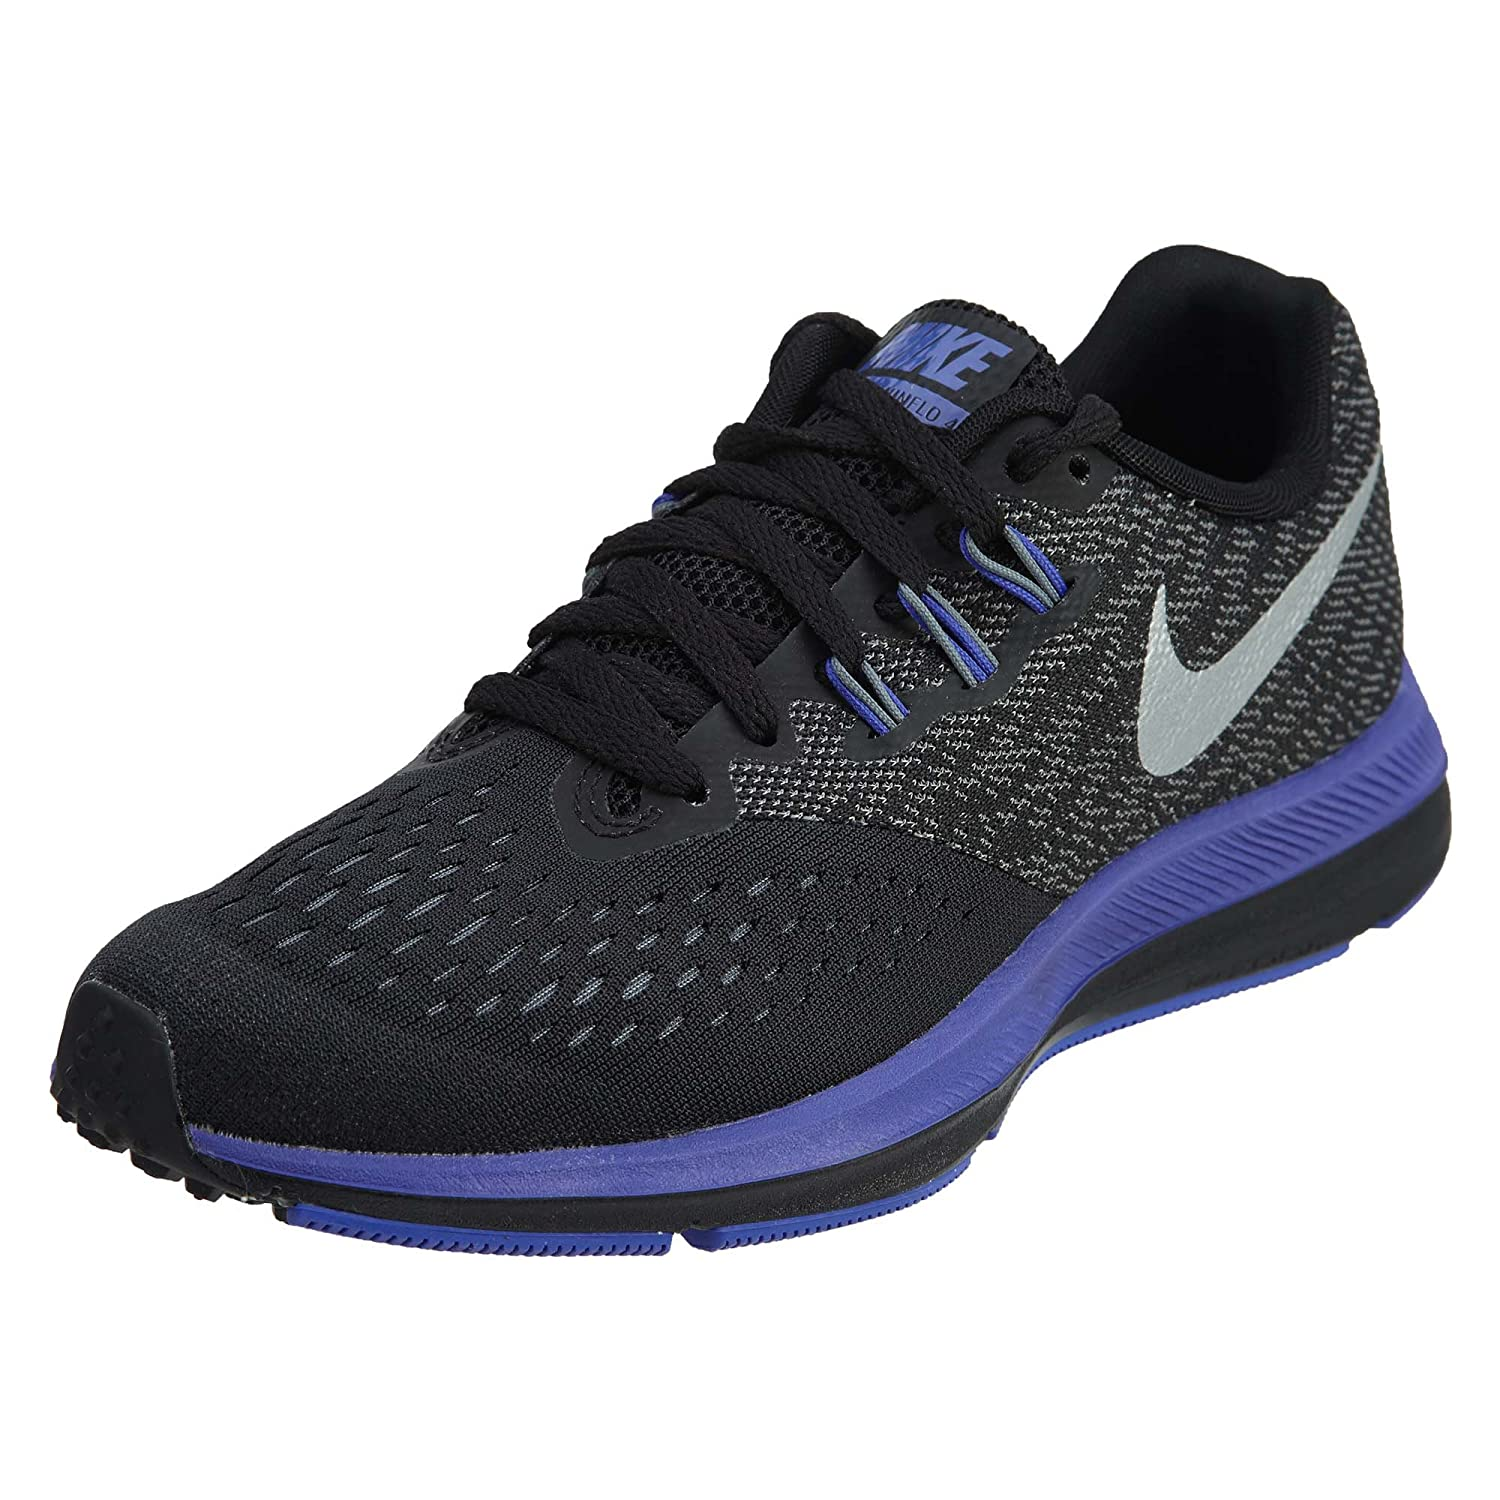 great look huge discount various design Nike Womens Zoom Winflo 4 Running Shoes: Amazon.in: Shoes ...